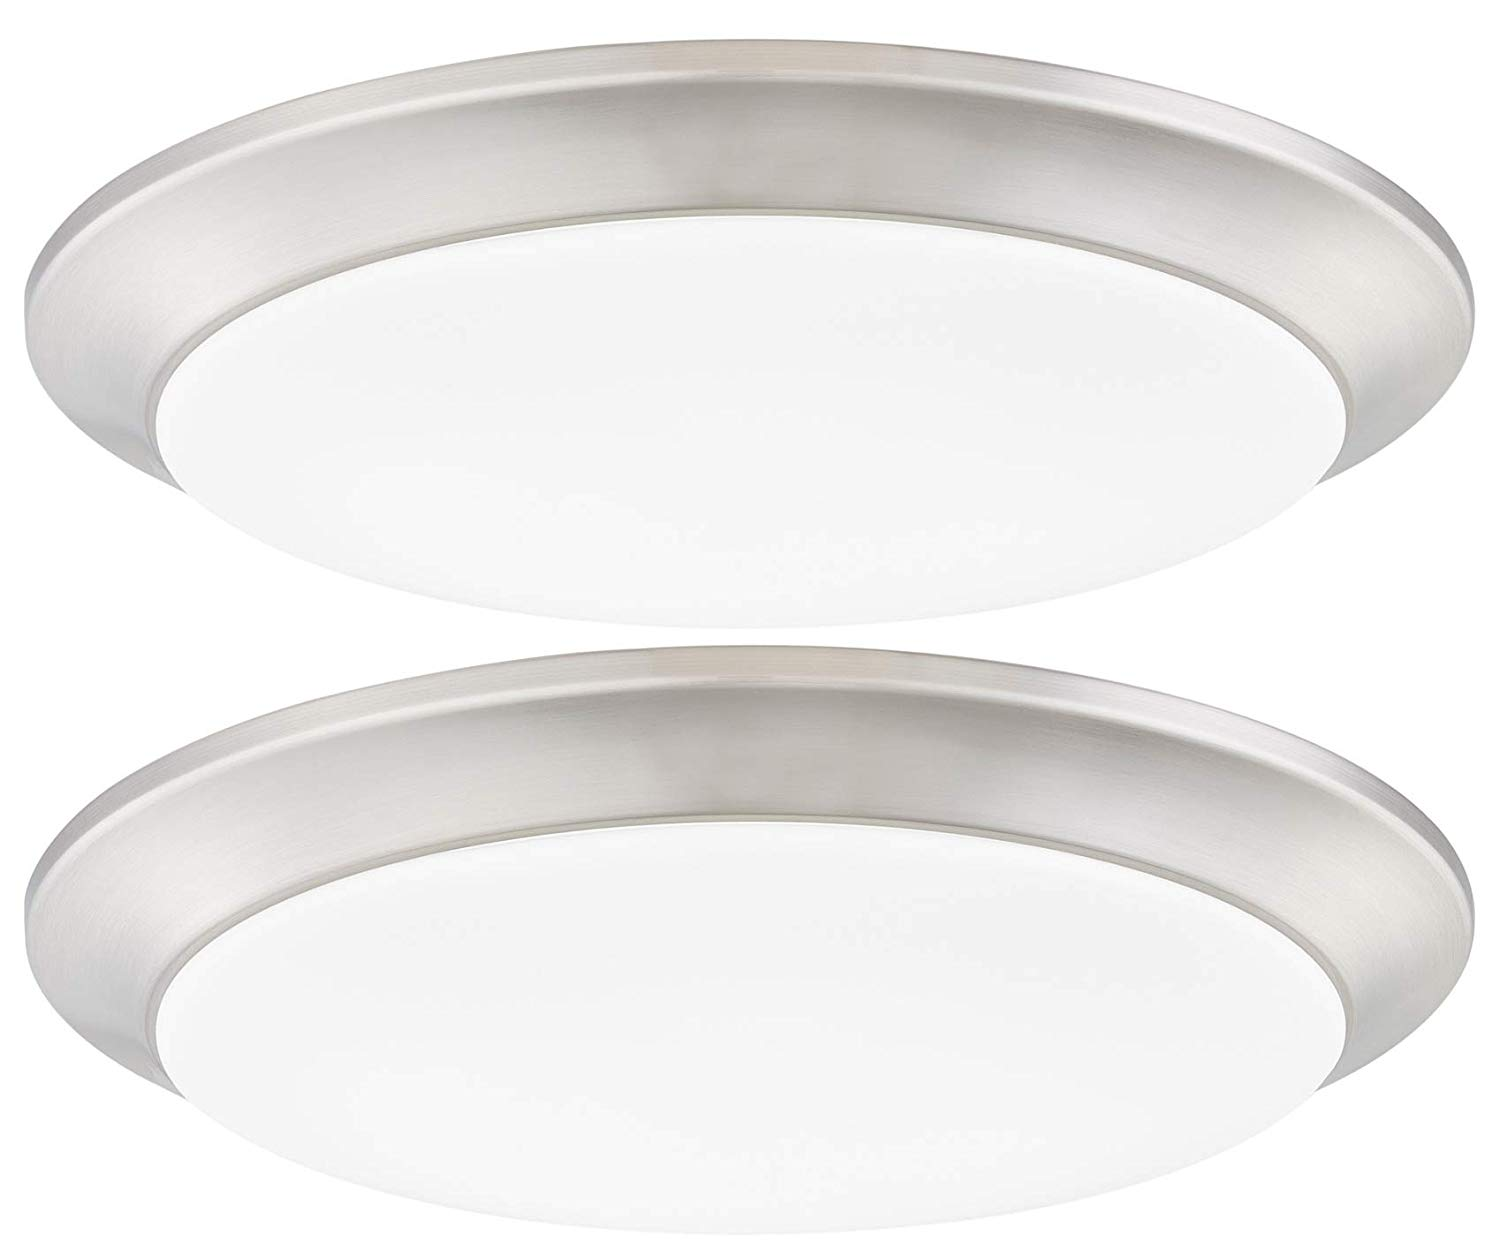 Gruenlich Led Flush Mount Ceiling Lighting Fixture 7 Inch Dimmable 12w 75w Replacement 840 Lumen Metal Housing With Nickel Finish Etl And Damp Location Rated 2 Pack Buy Ceiling Light Led Ceiling